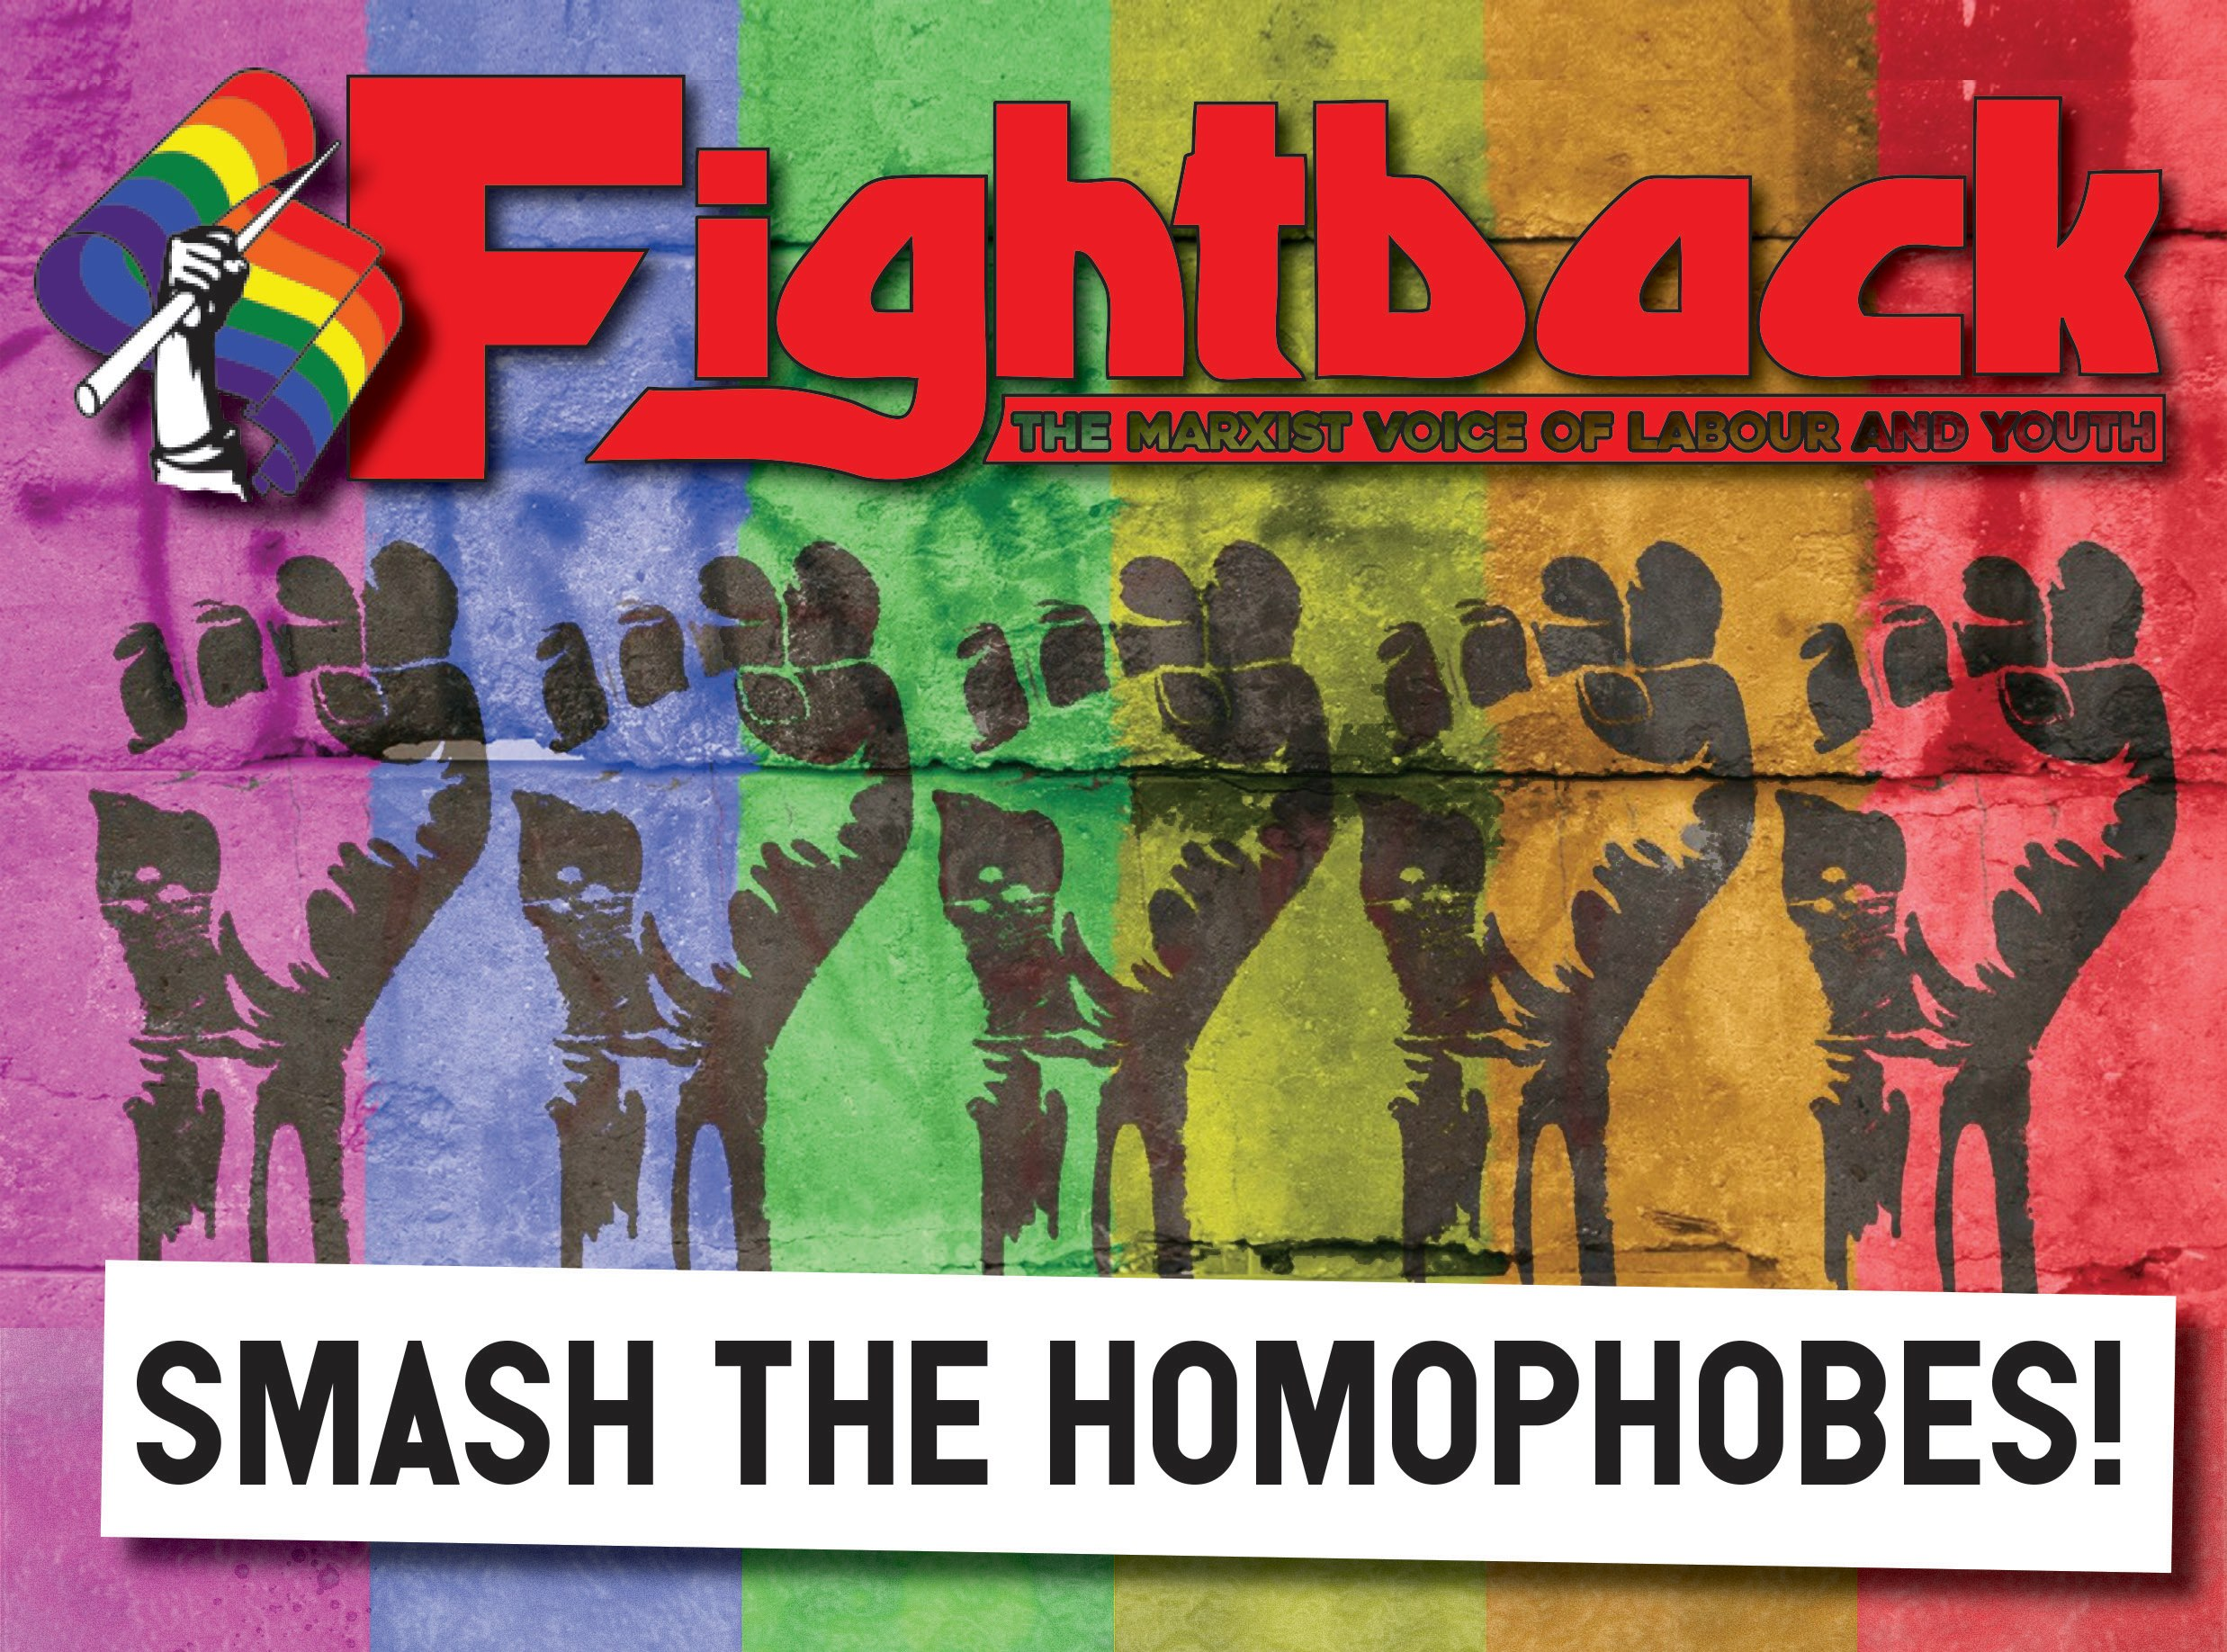 Fightback's fight homophobes graphic